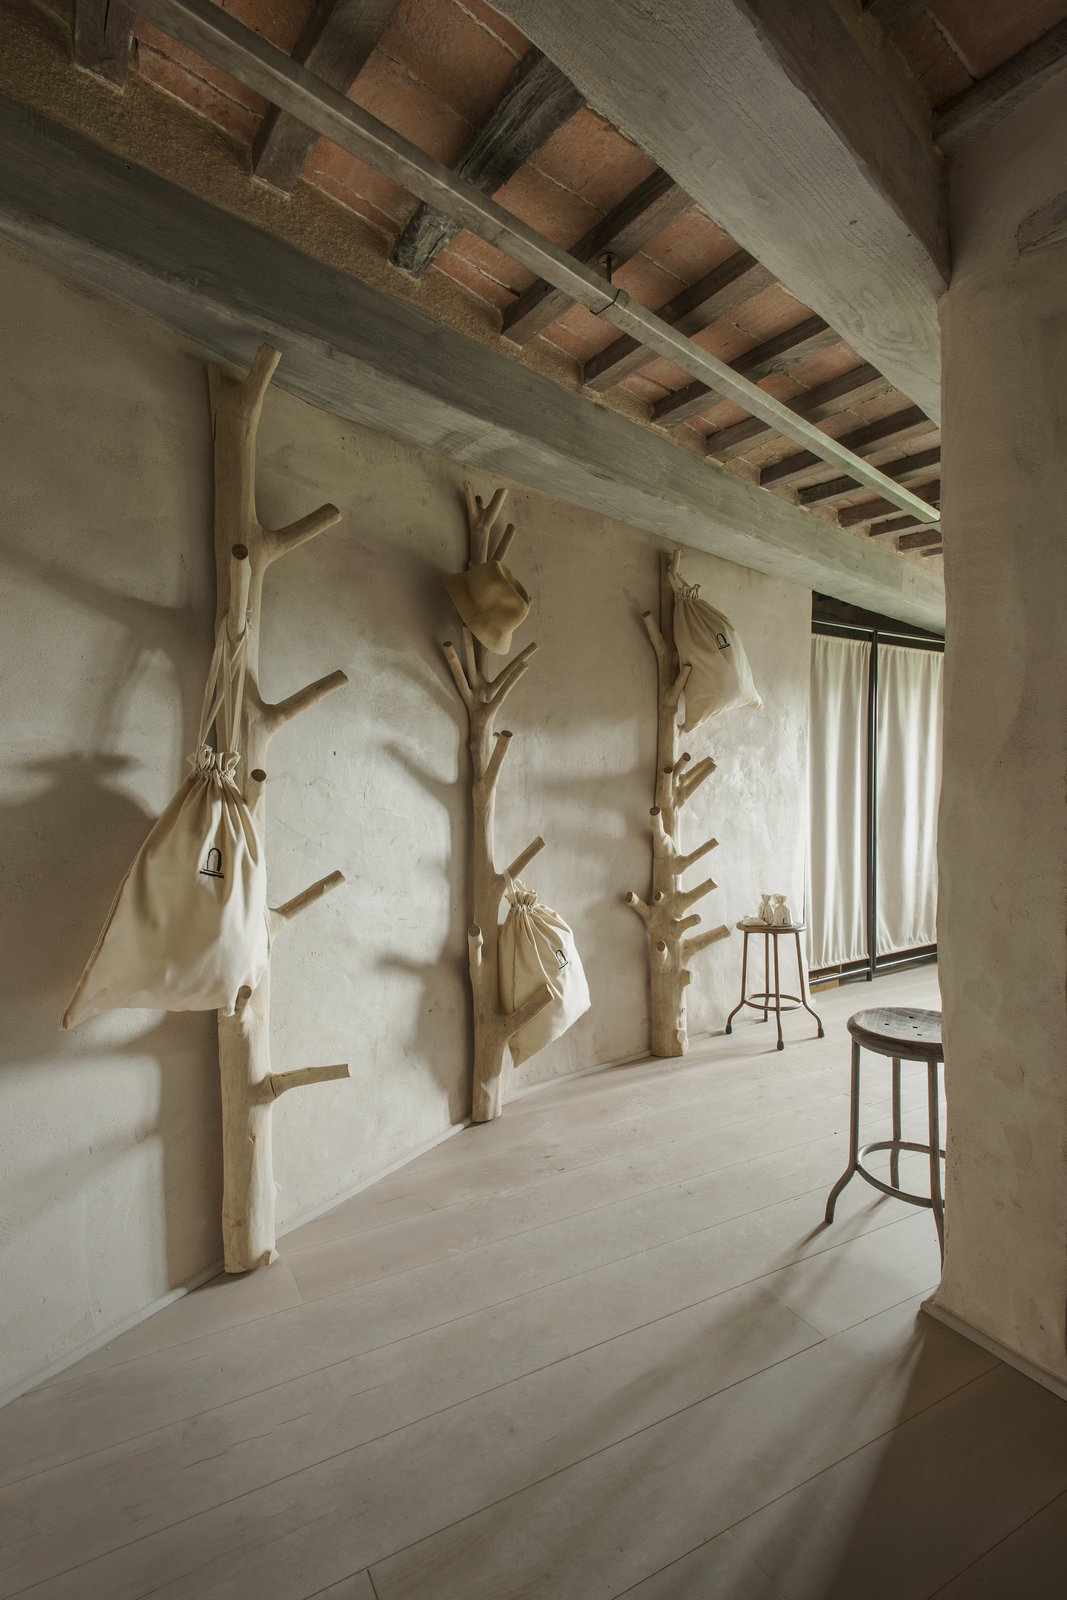 Photo 8 of 9 in A Tree-Filled Spa That Brings Warm Modernism to a 900-Year-Old Tuscan Village